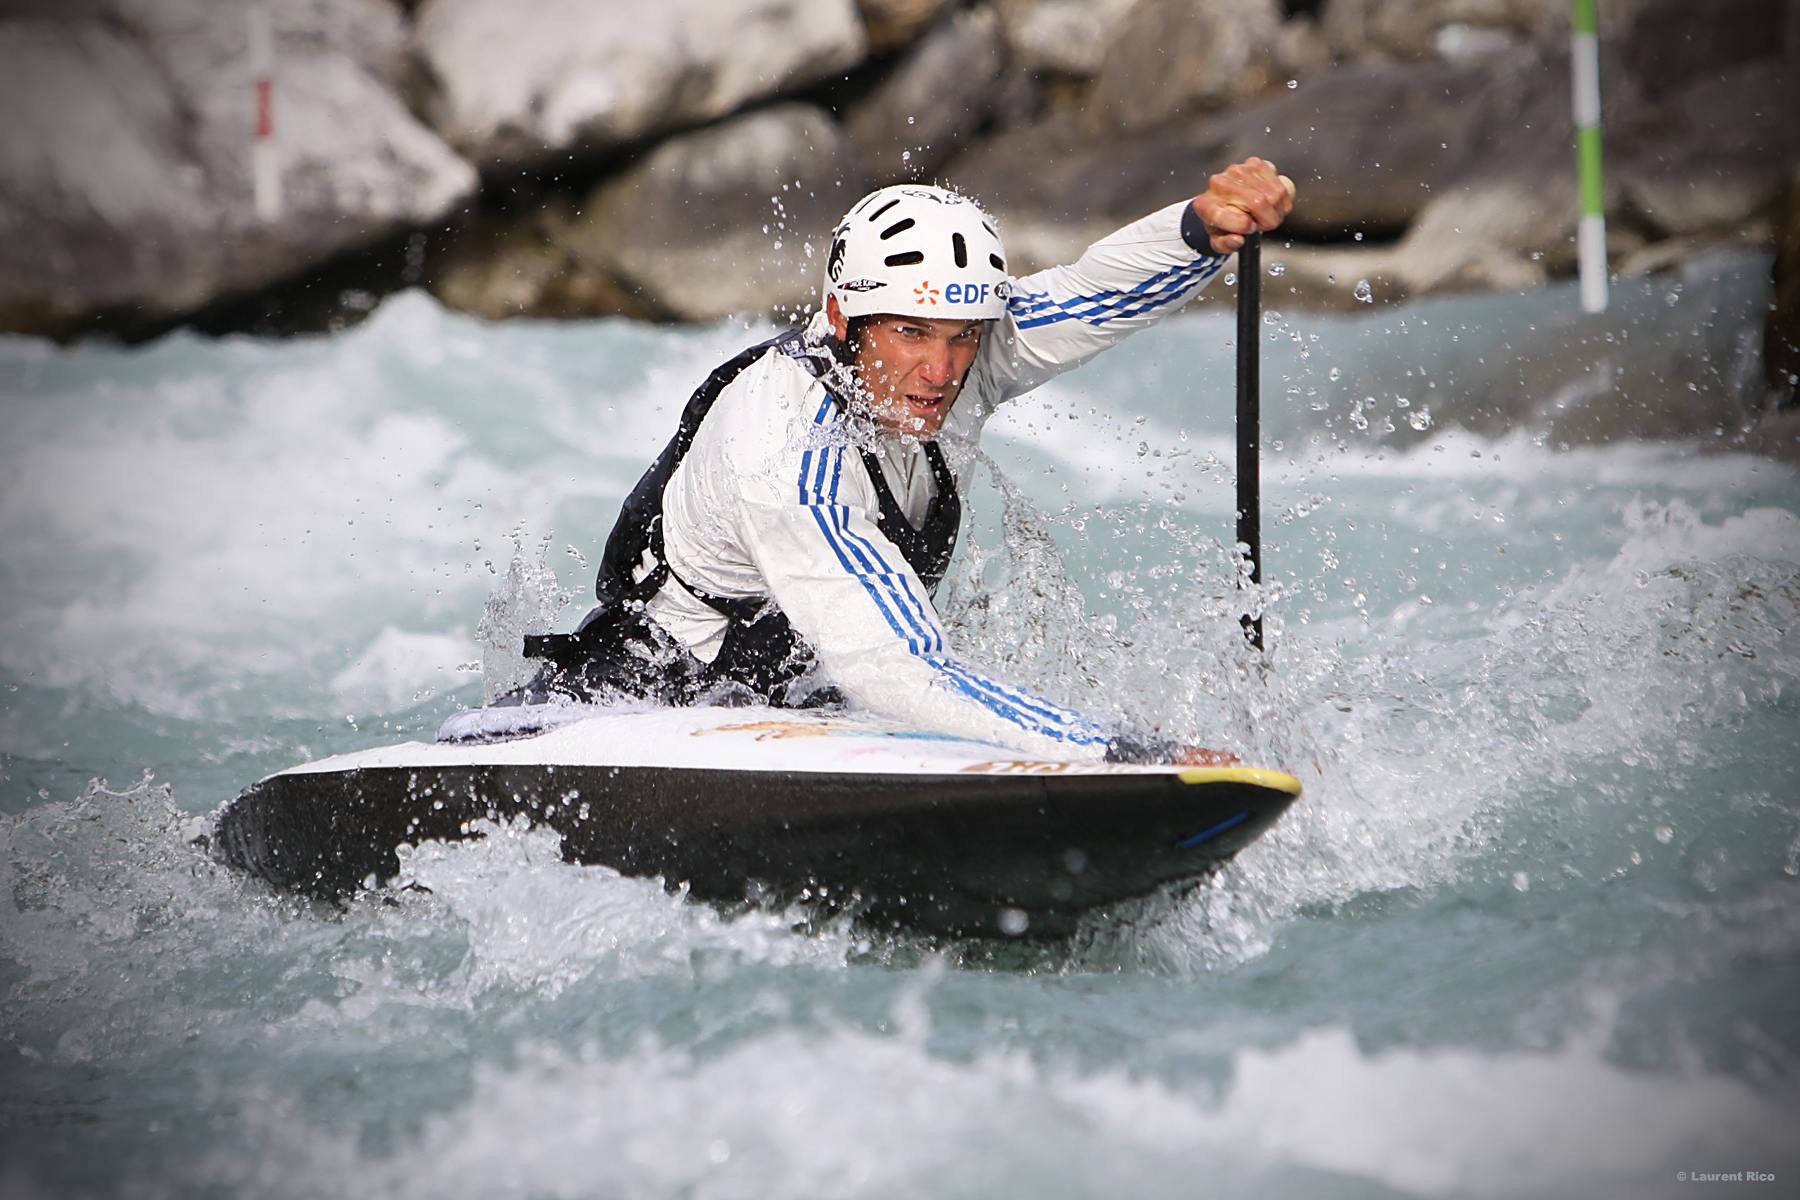 Laurent-rico-grenoble-bourg-saint-maurice-reportage-slalom-canoe-photos-championnats-competition-bassin-sport-international